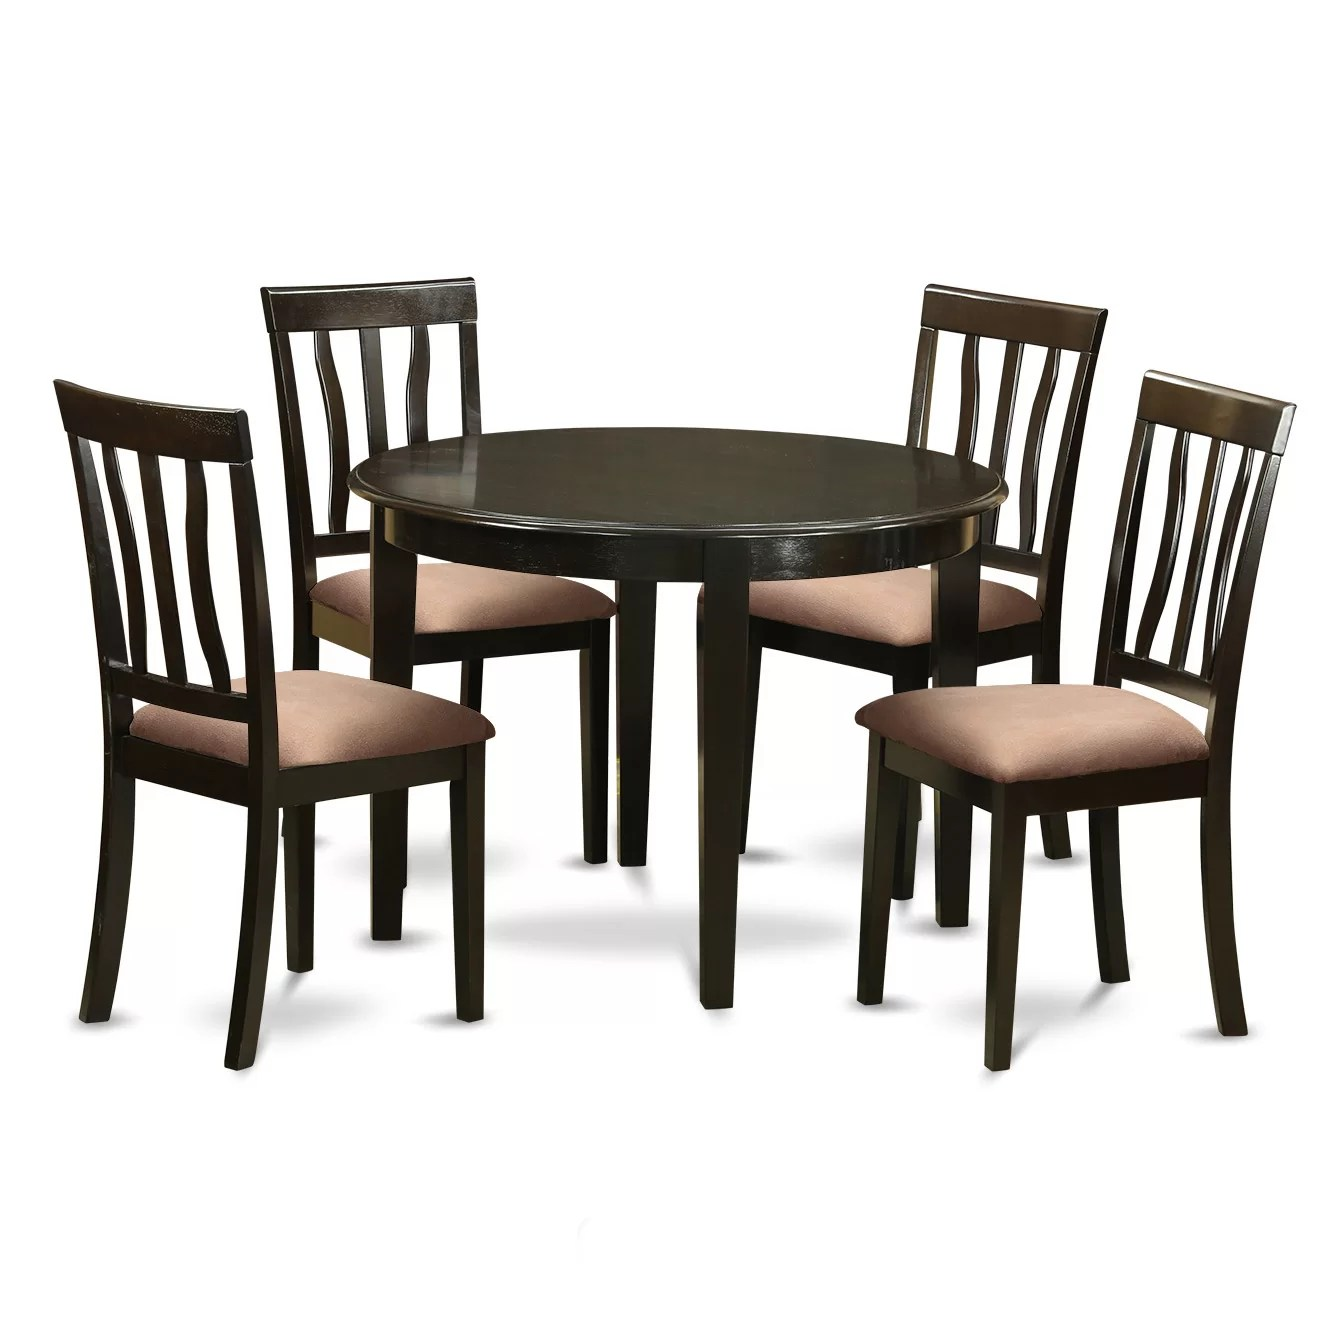 Small Round Table And Chairs Wooden Importers Boston 5 Piece Dining Set Wayfair